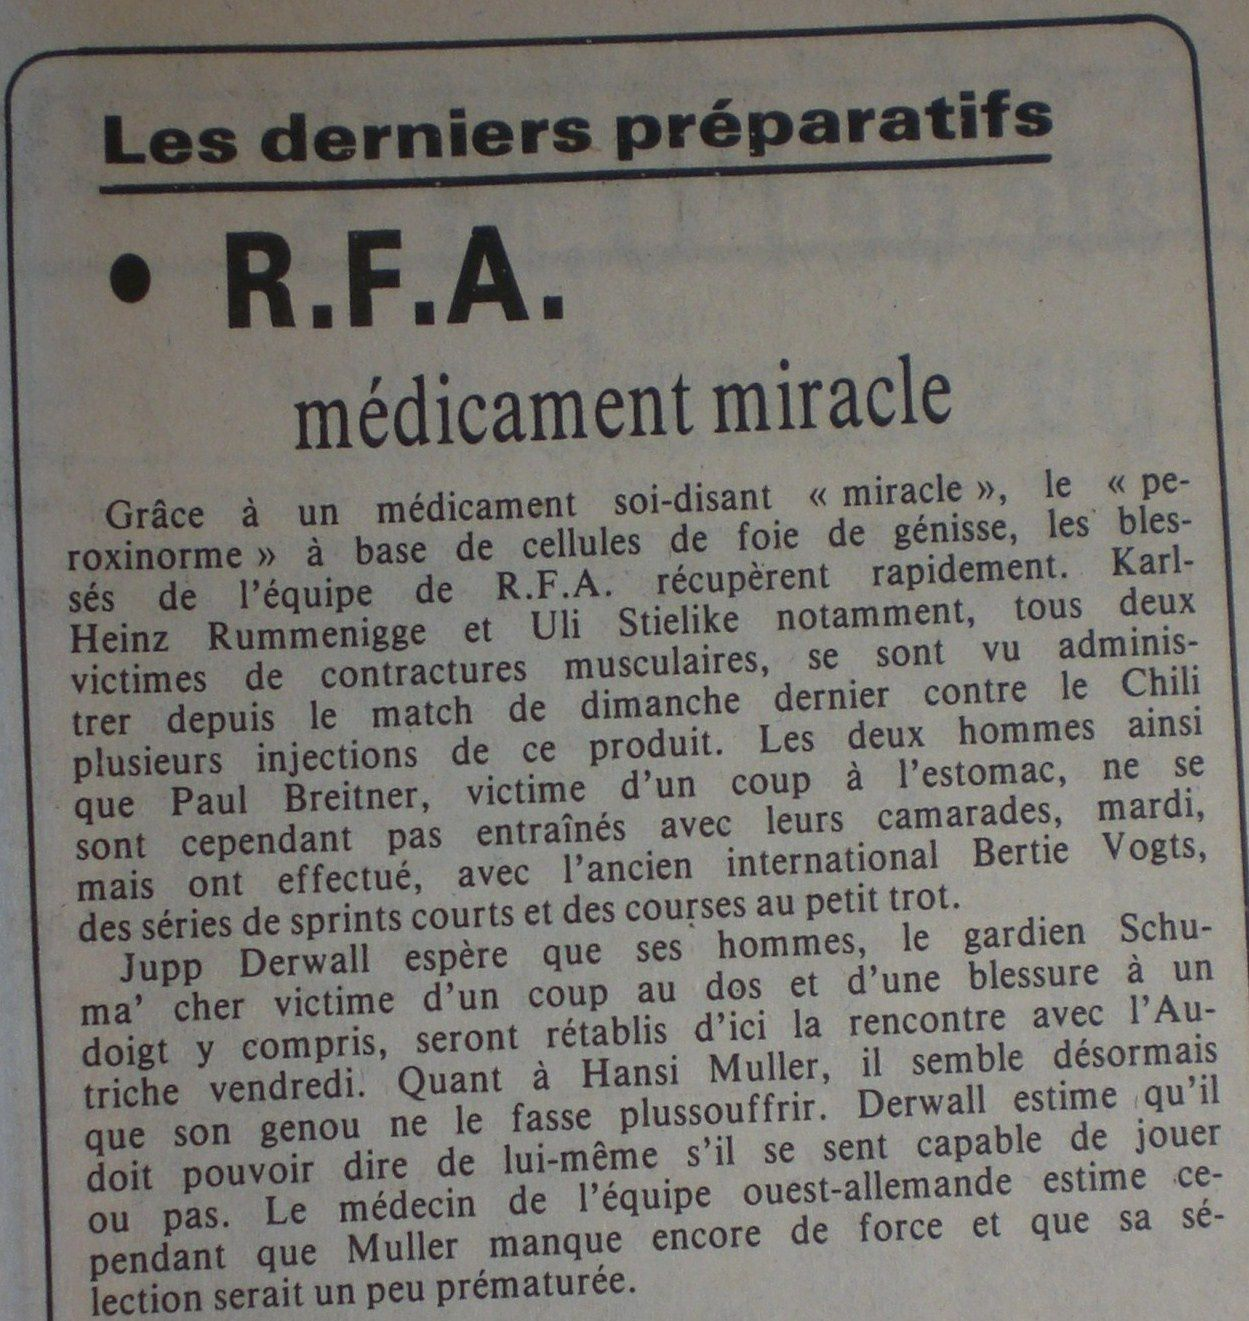 Medicament-miracle-pour-RFA.JPG